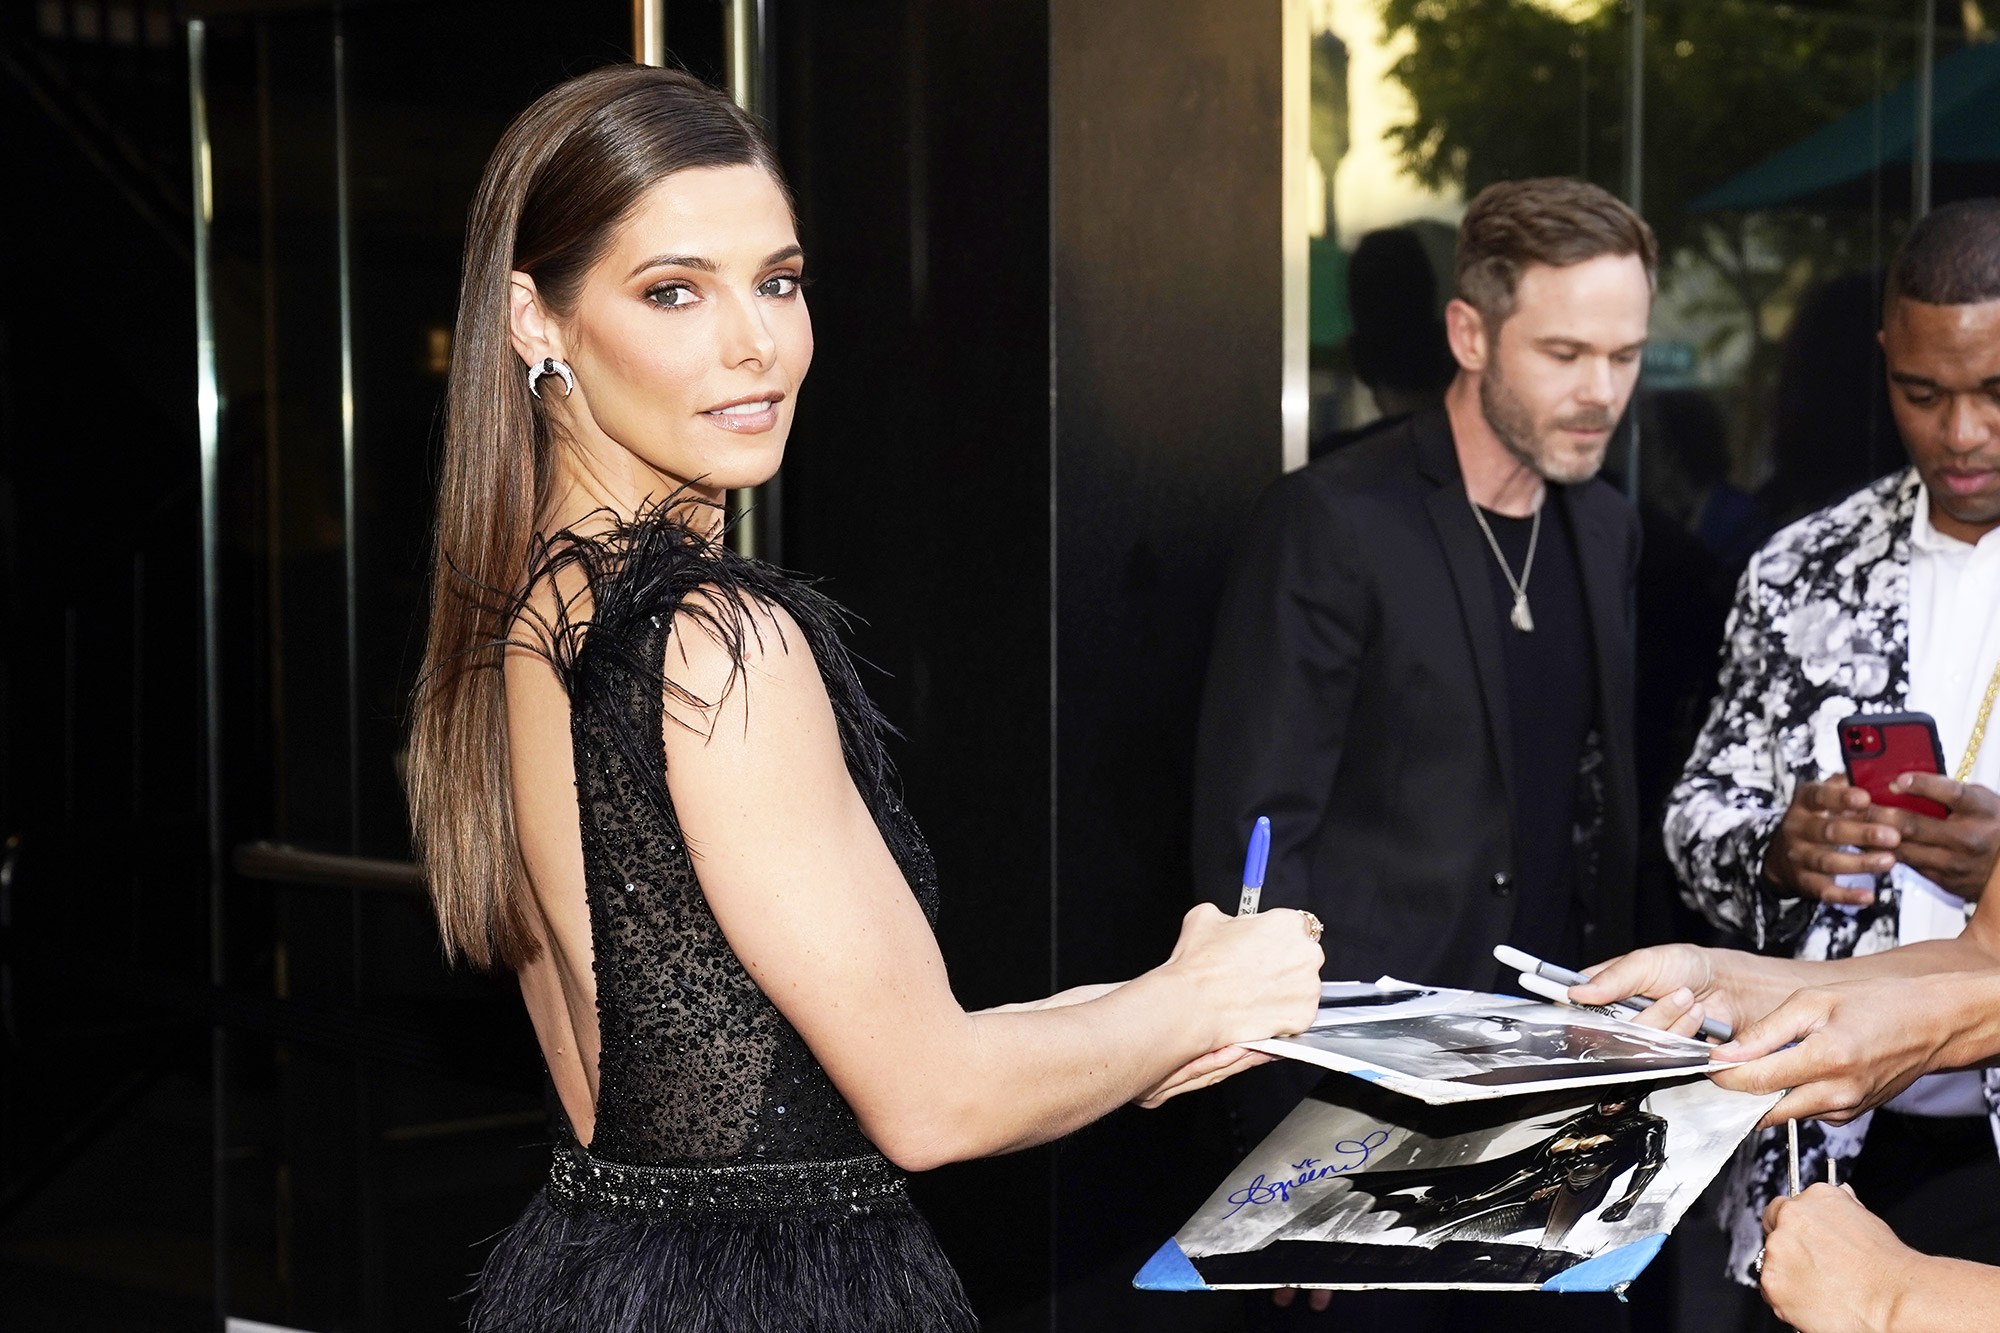 """Ashley Greene, a cast member in """"Aftermath,"""" signs autographs at the premiere of the film, at the Landmark Westwood in Los Angeles LA Premiere of """"Aftermath"""", Los Angeles, United States - 03 Aug 2021"""